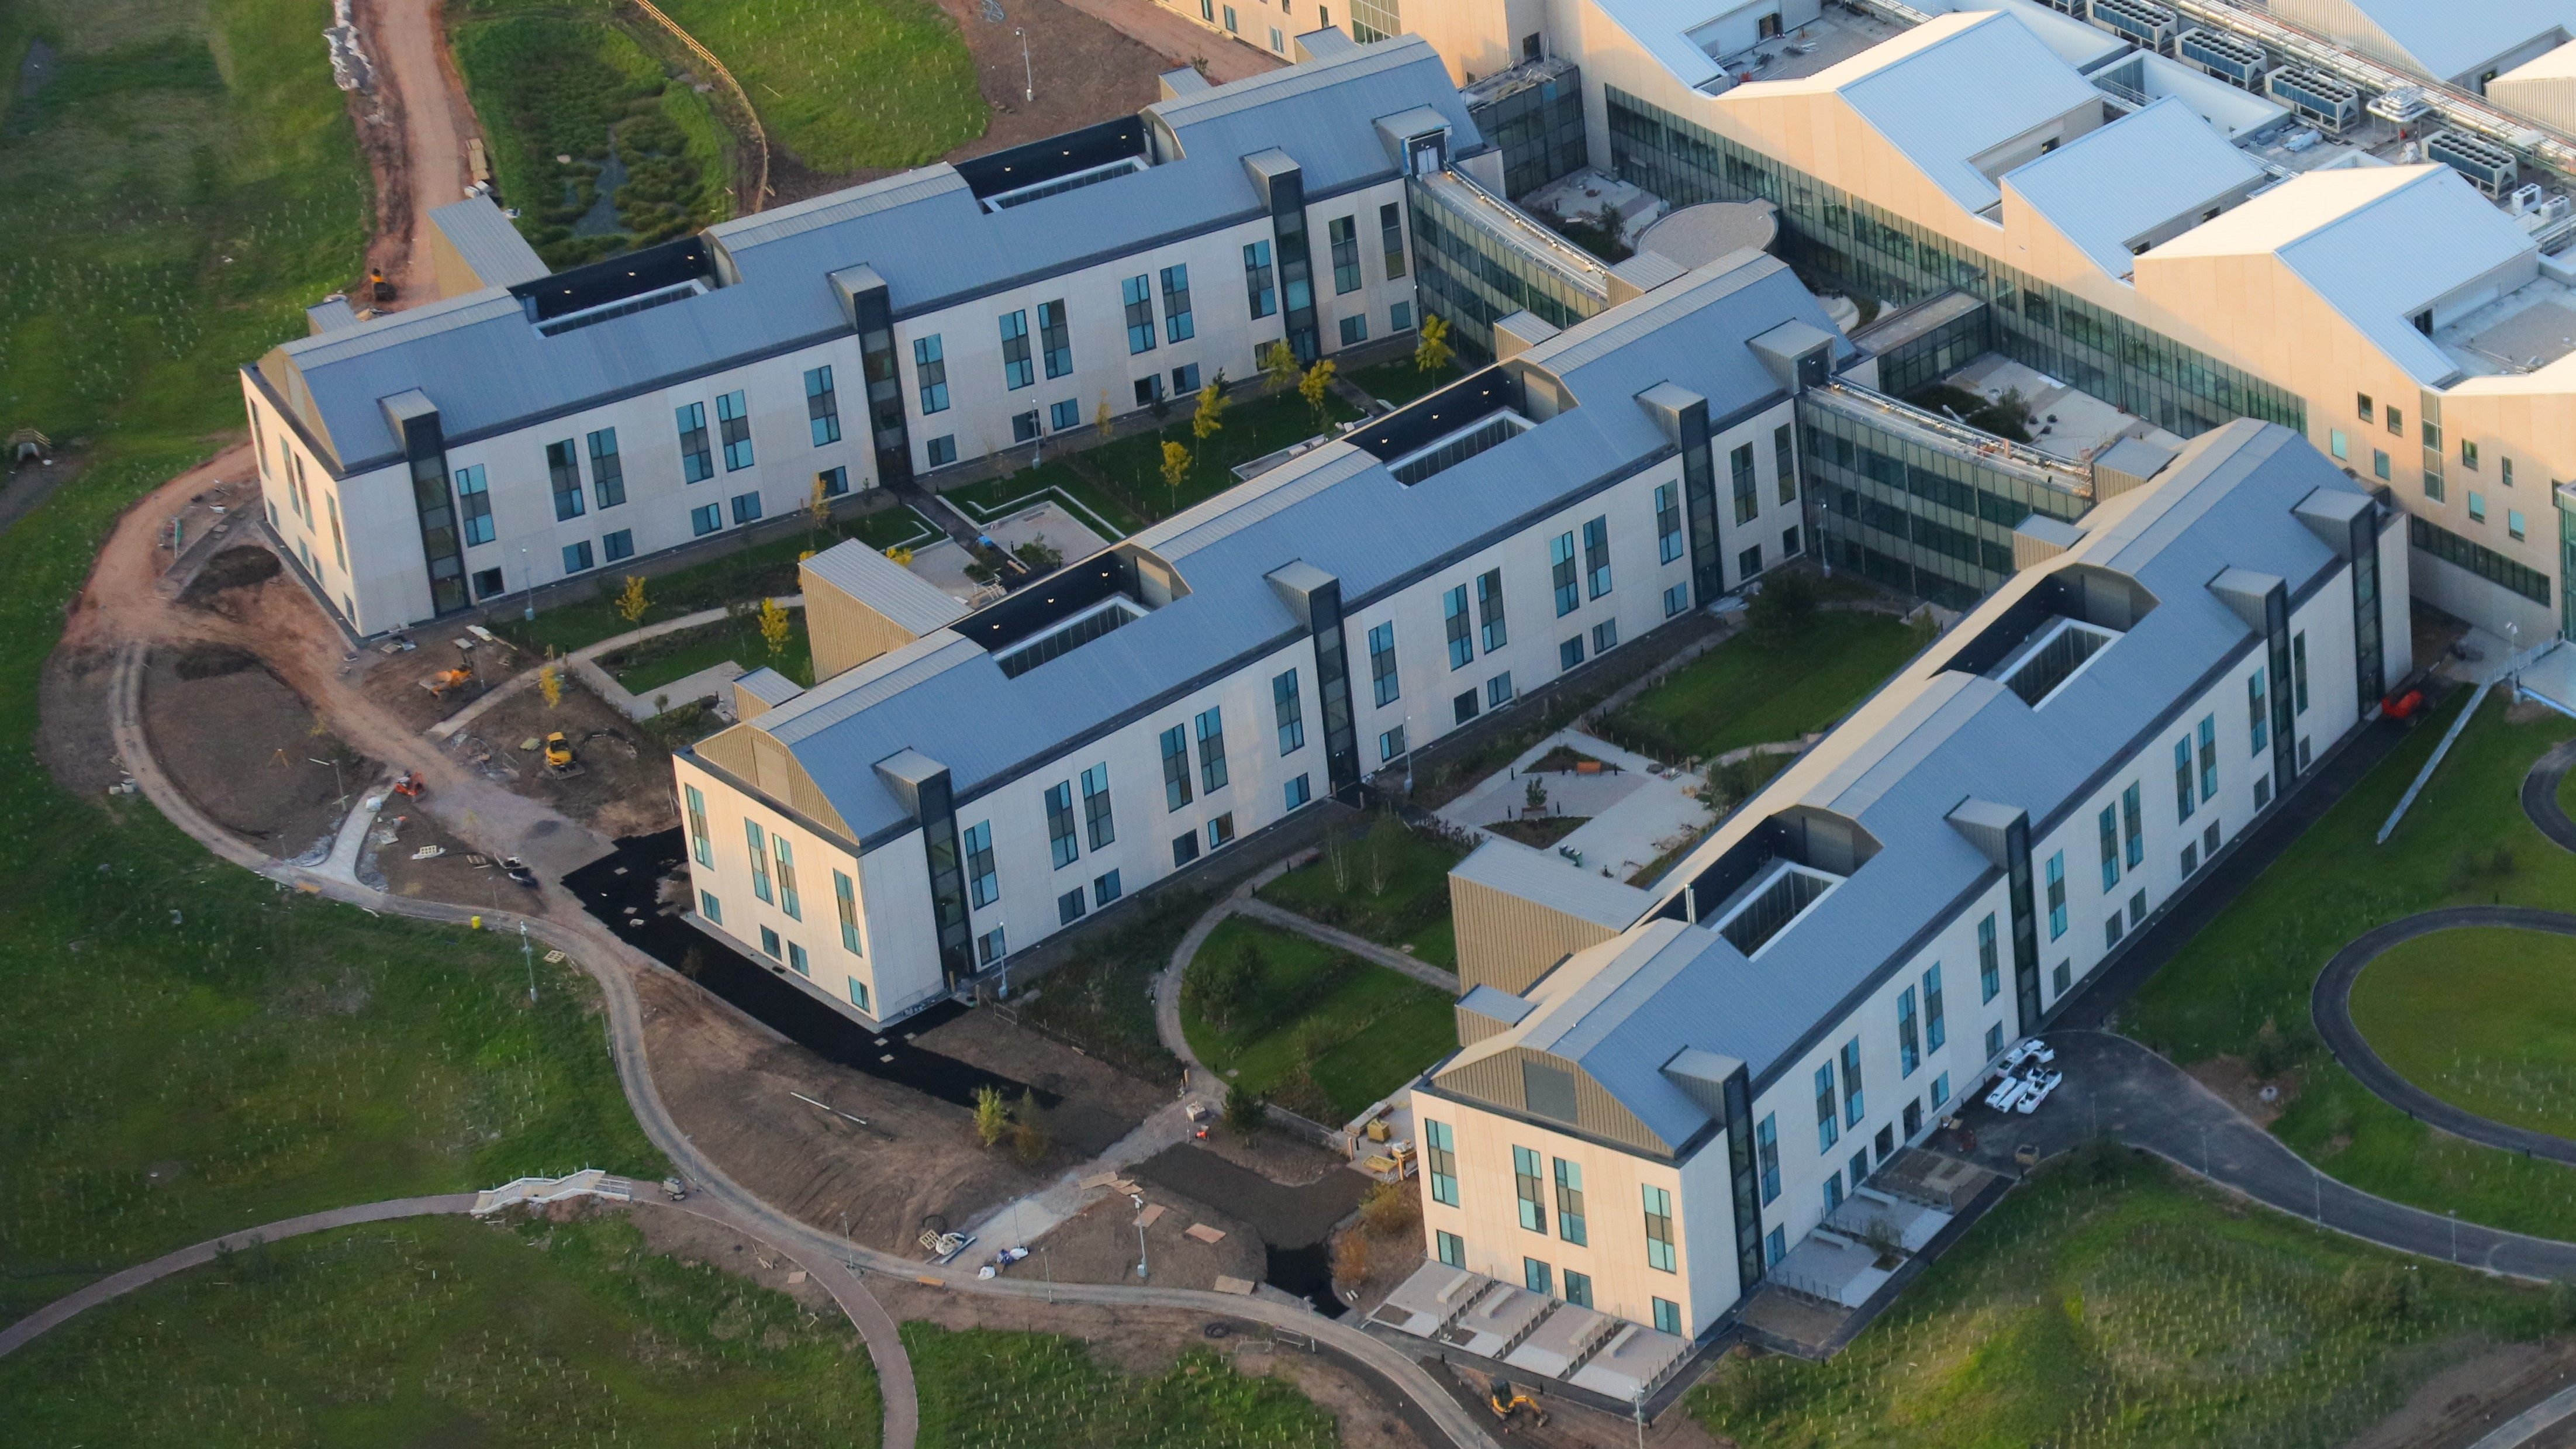 8. Longworth Dumfries & Galloway Hospital, aerial complete 3 wings